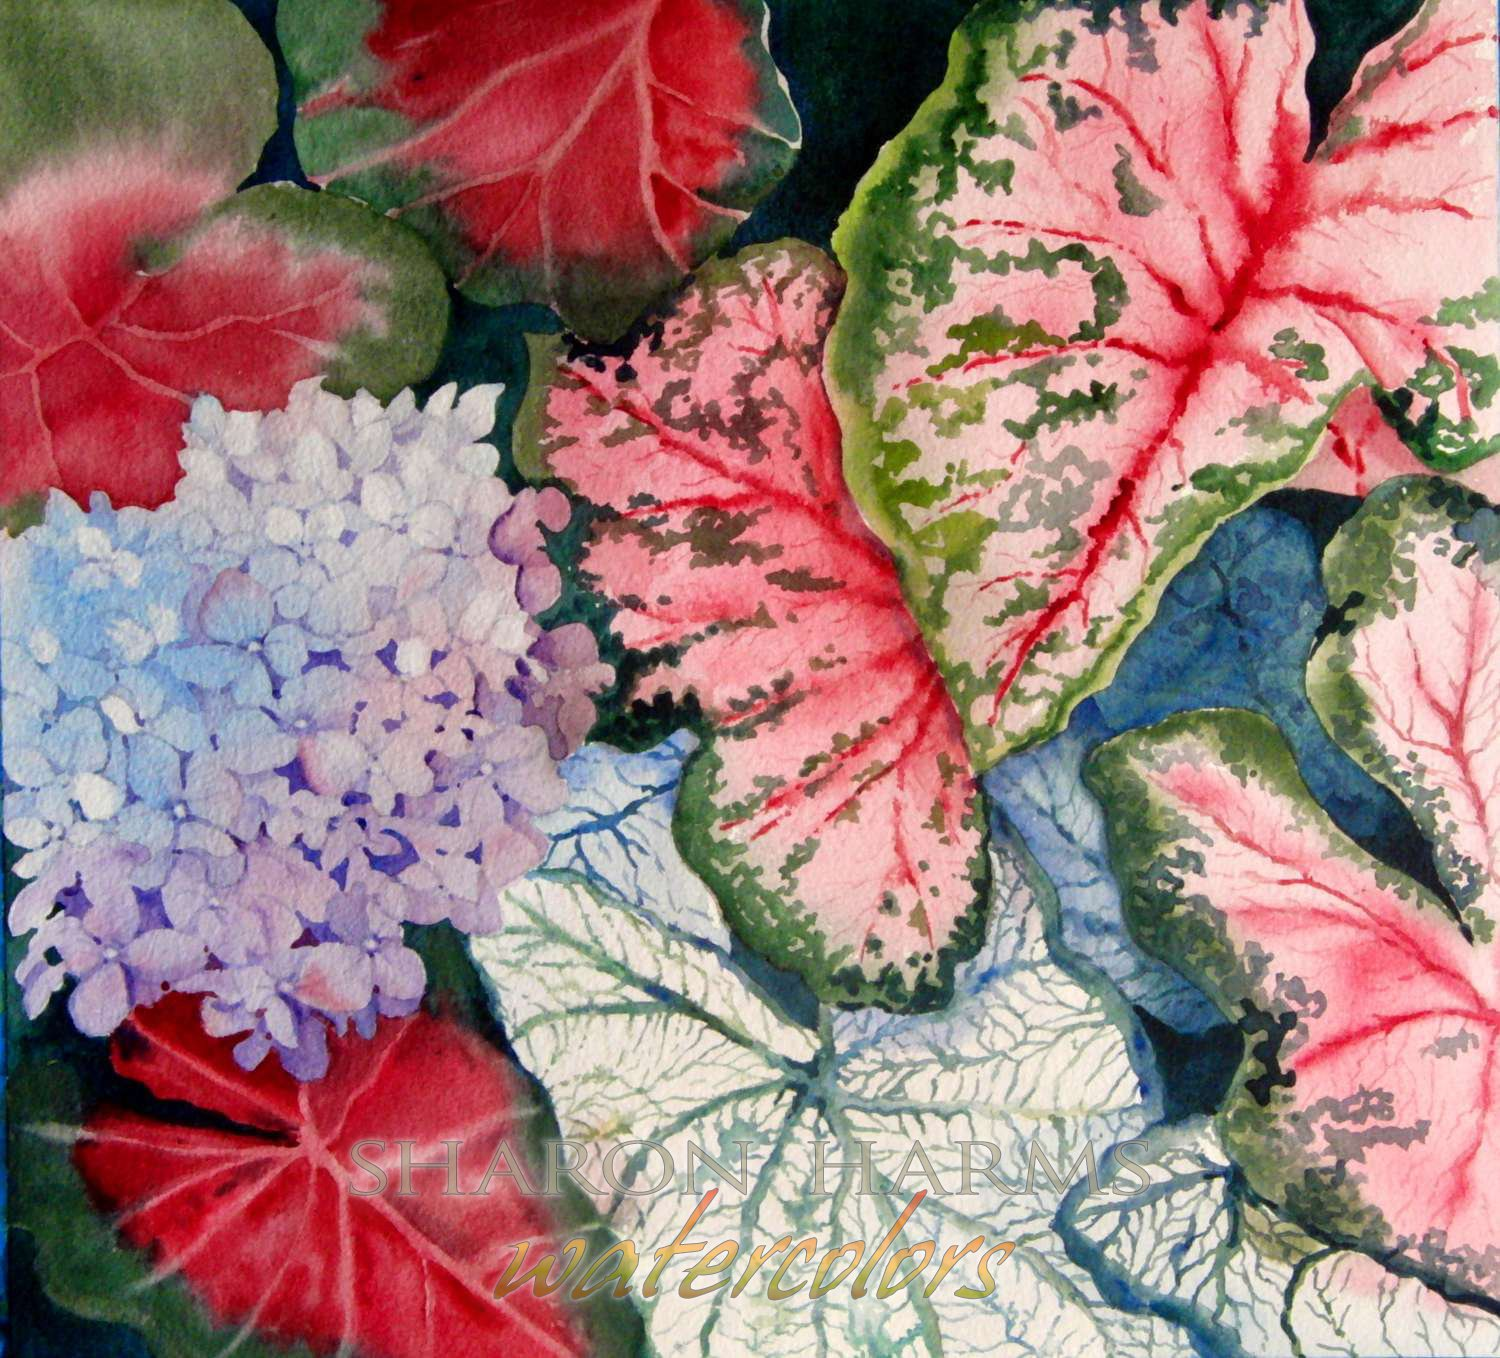 Caladium and Hydrangea